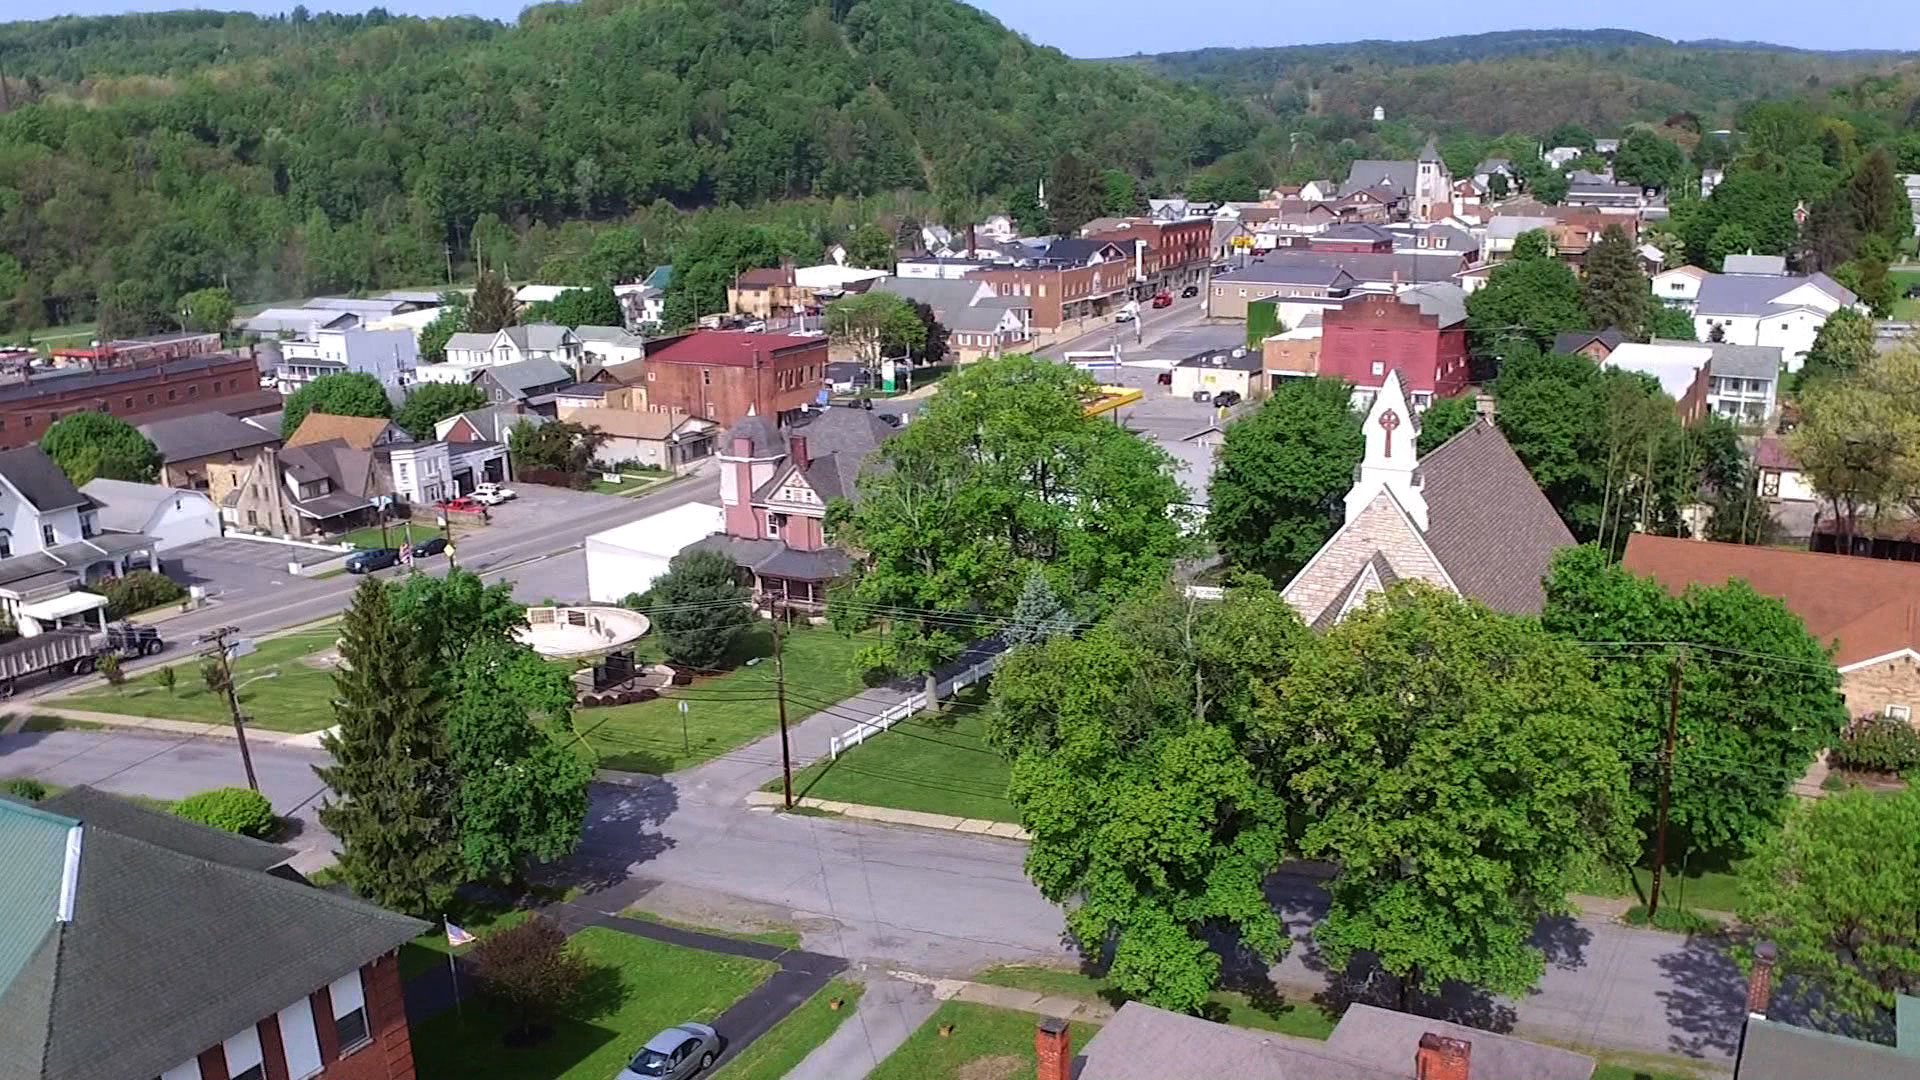 Aerial view of community in Curwensville, PA